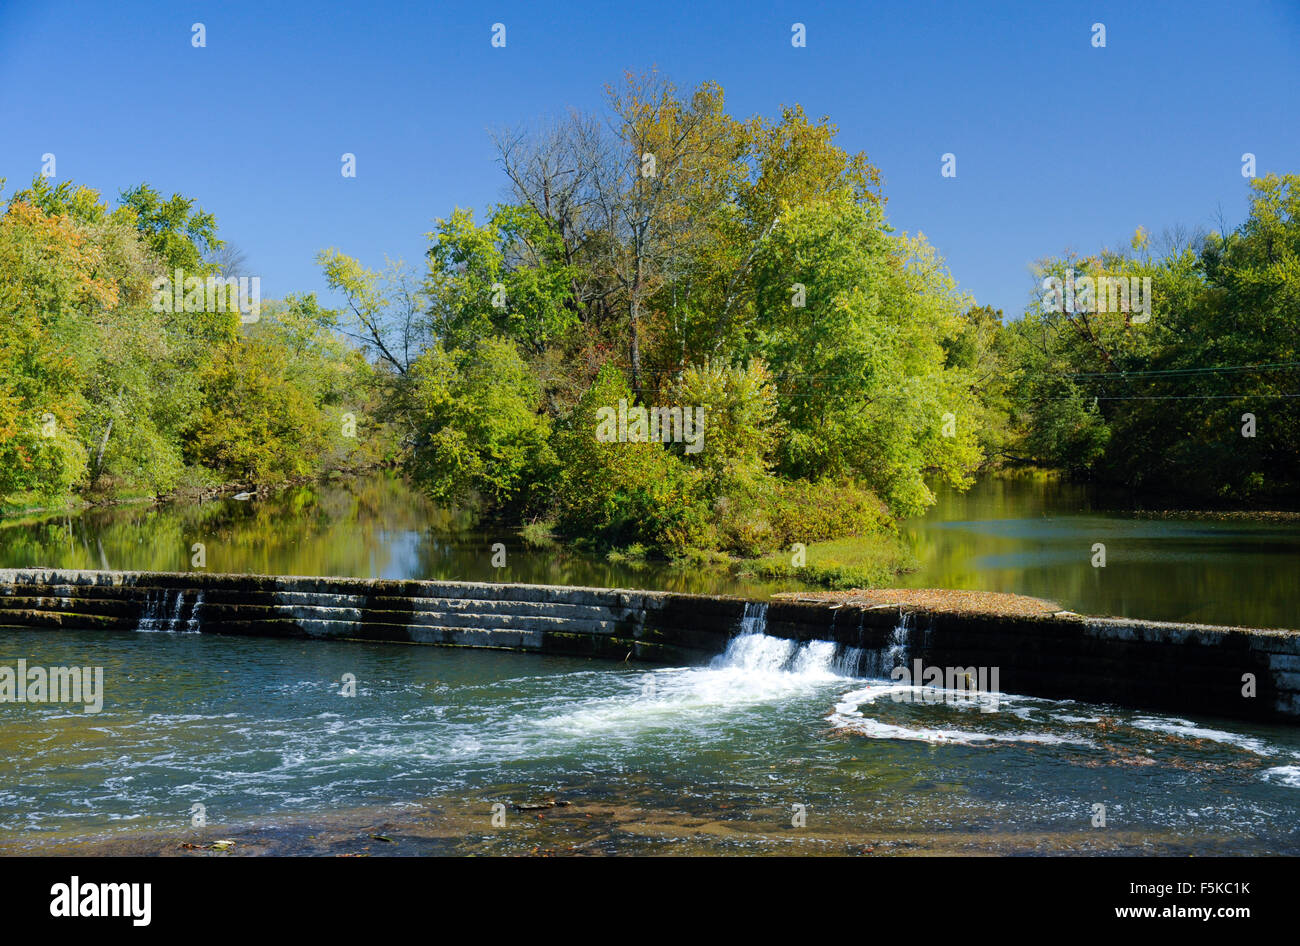 Dam on the Big Blue River, Edinburgh, Indiana Stock Photo: 89551663